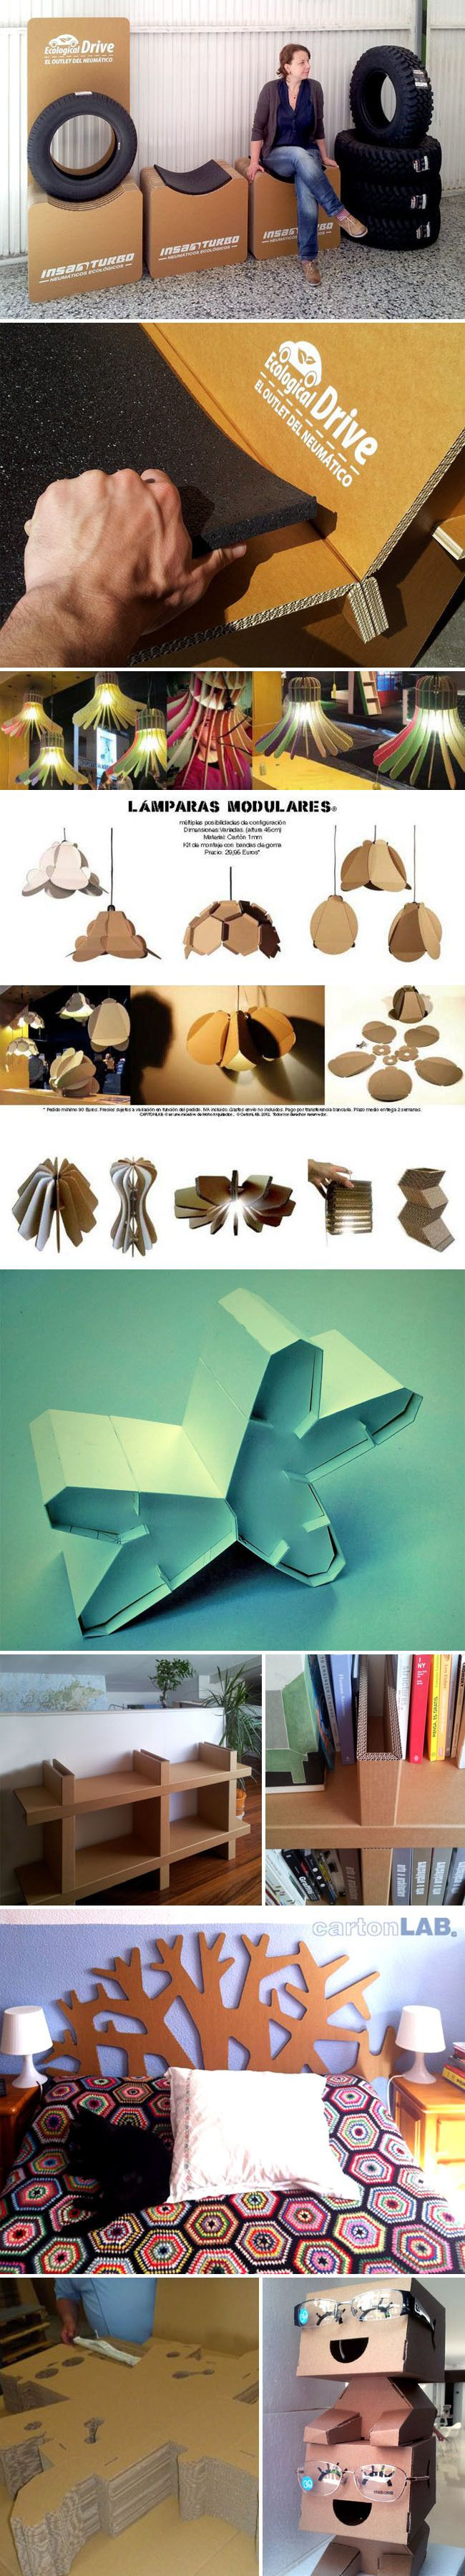 Cardboard Furniture, Cardboard Bench And Recycled Tires, Flatpacked  Cardboard Construction, Industrial Design,